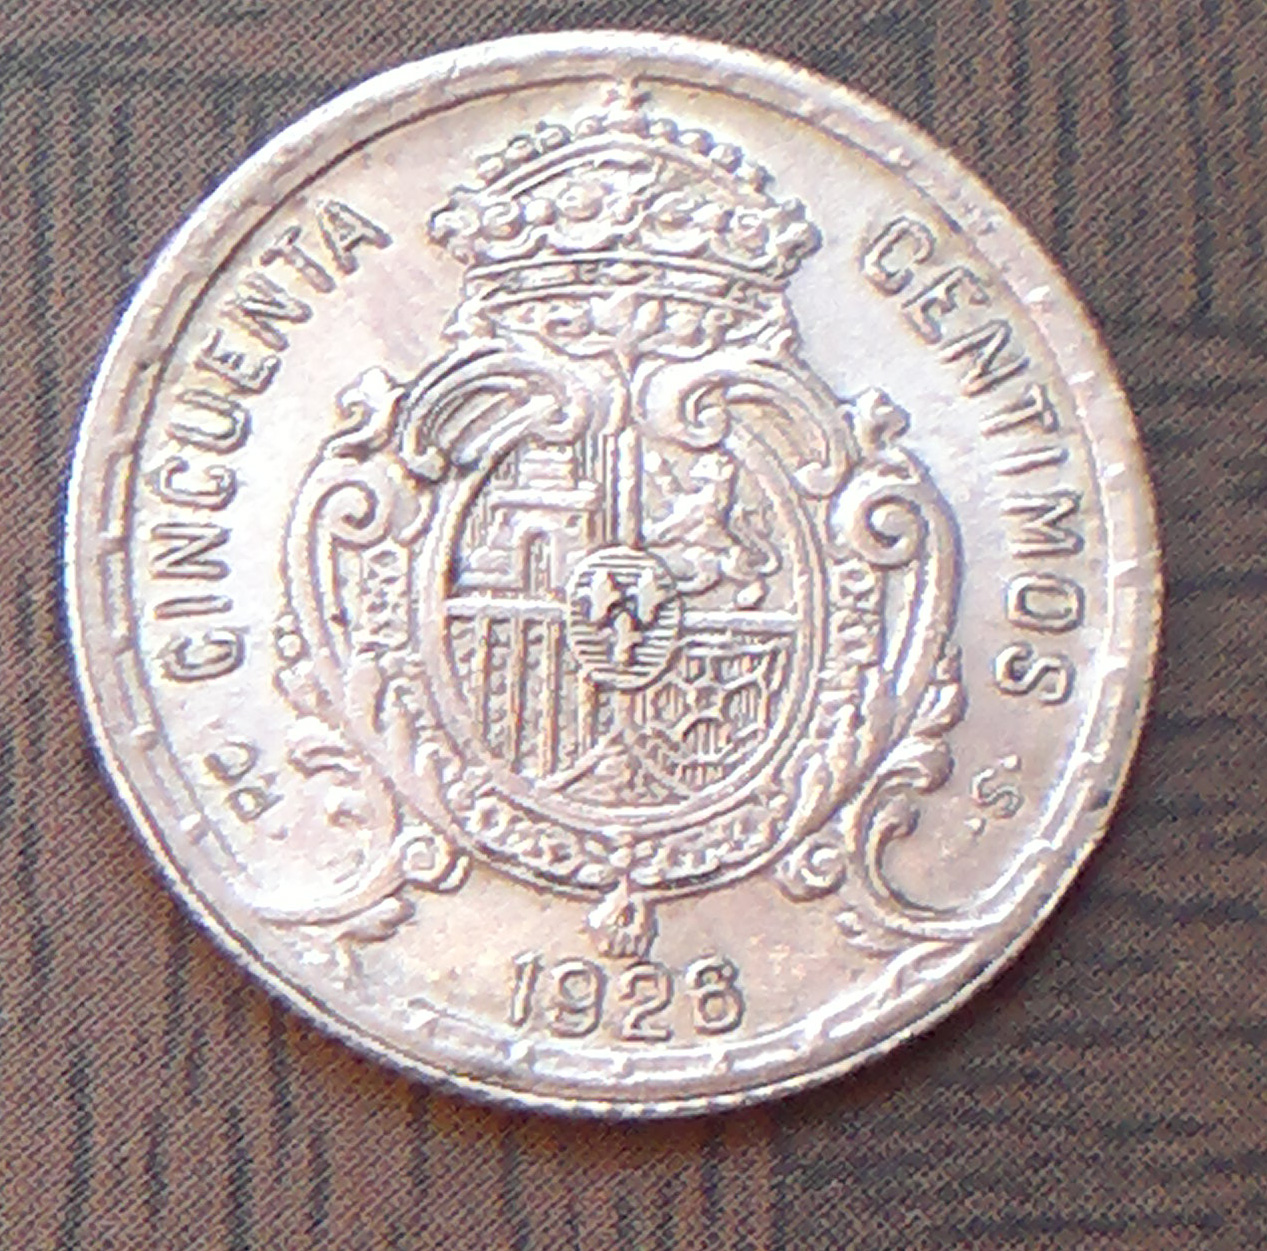 50 ct 1926 alfonso XIII 2014_05_05_3288a